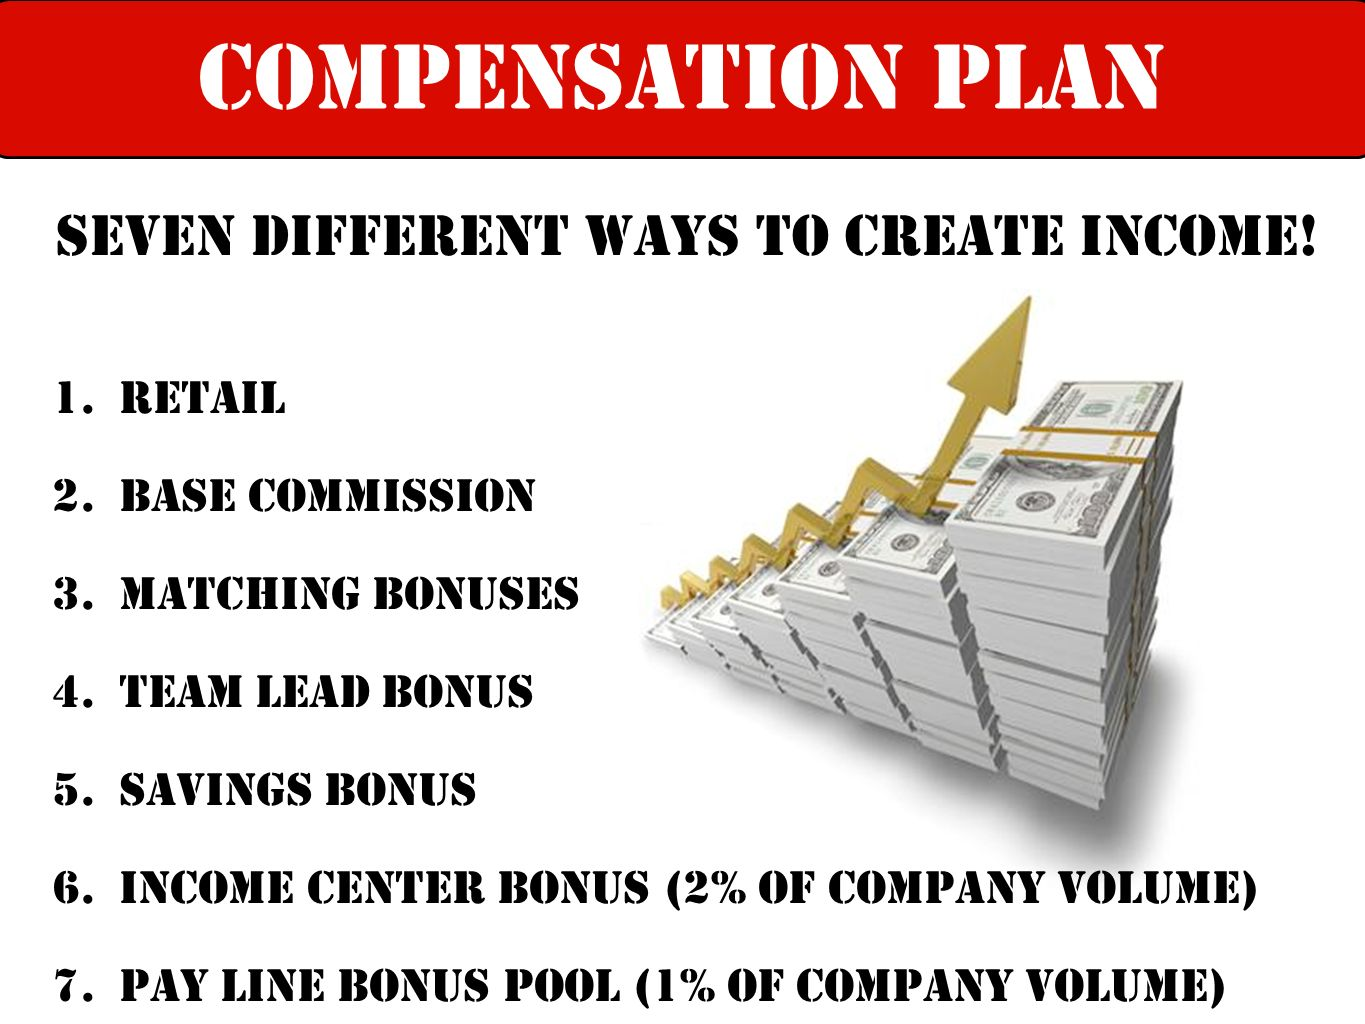 SEVEN DIFFERENT WAYS TO CREATE INCOME!